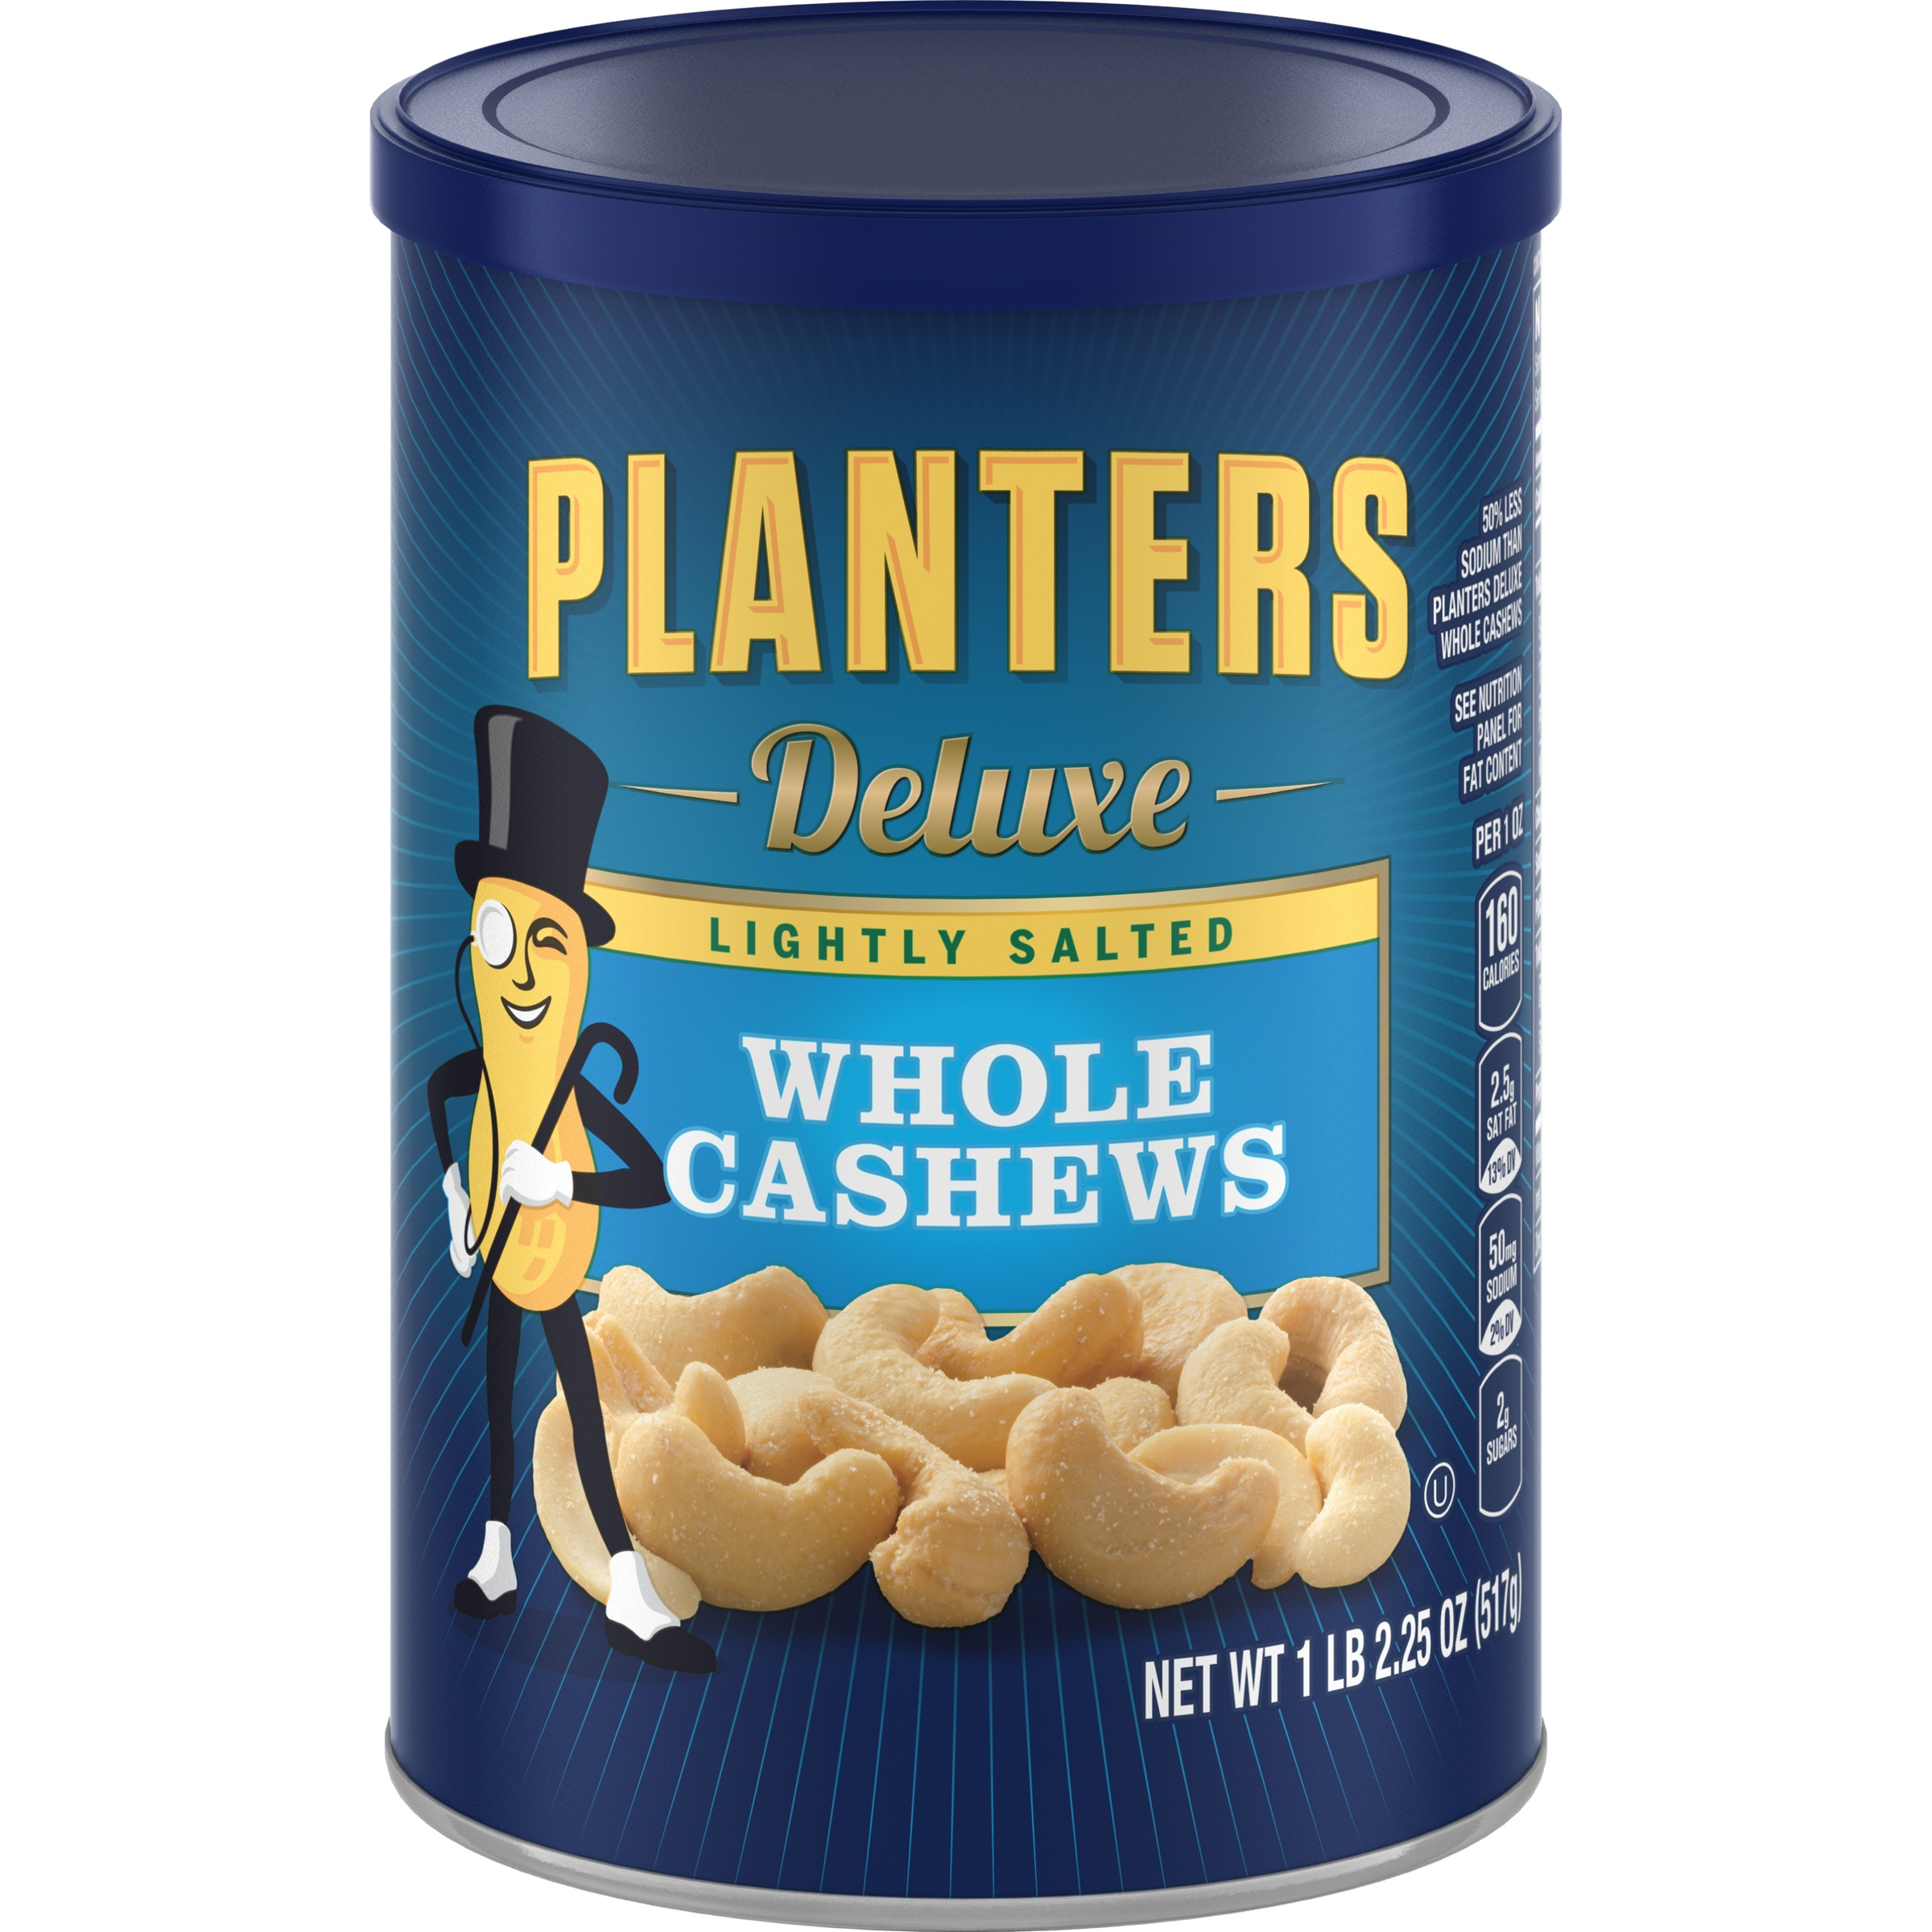 Planters Deluxe Lightly Salted Whole Cashews, 18.25 oz Can